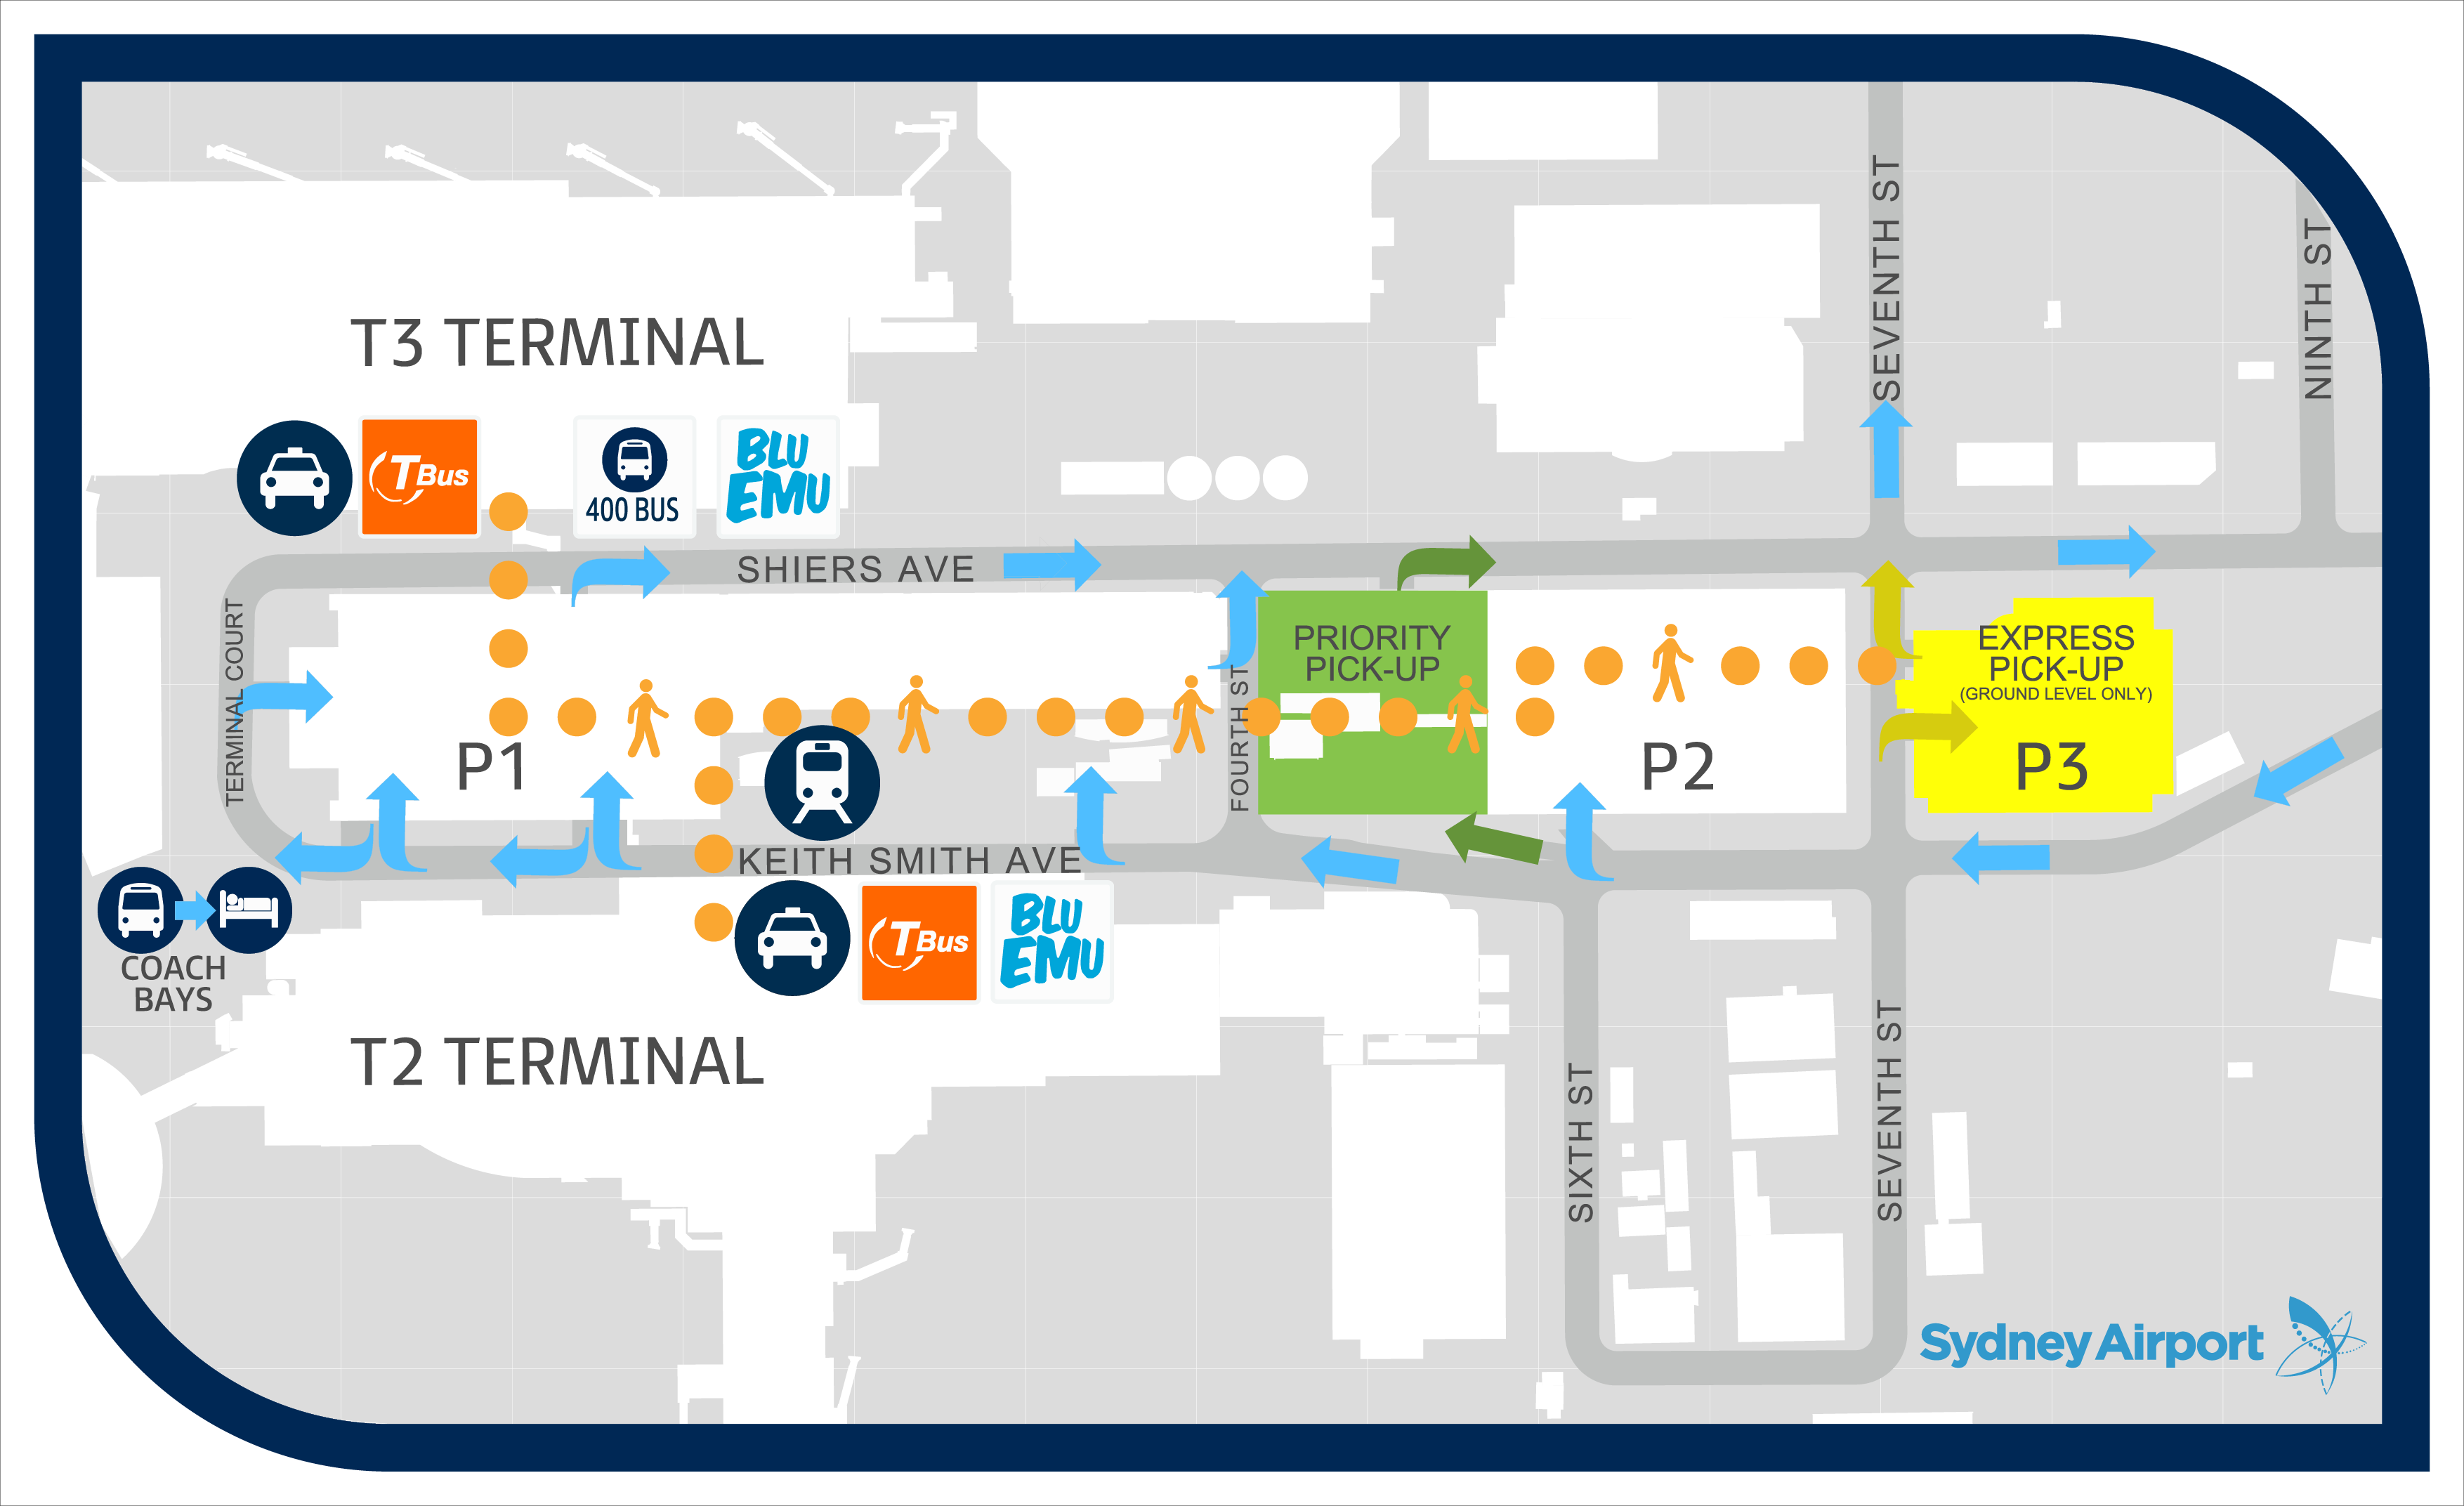 terminal 2 sydney domestic airport map Sydney Airport Parking From 13 Day At Mascot Air Travel Parking terminal 2 sydney domestic airport map